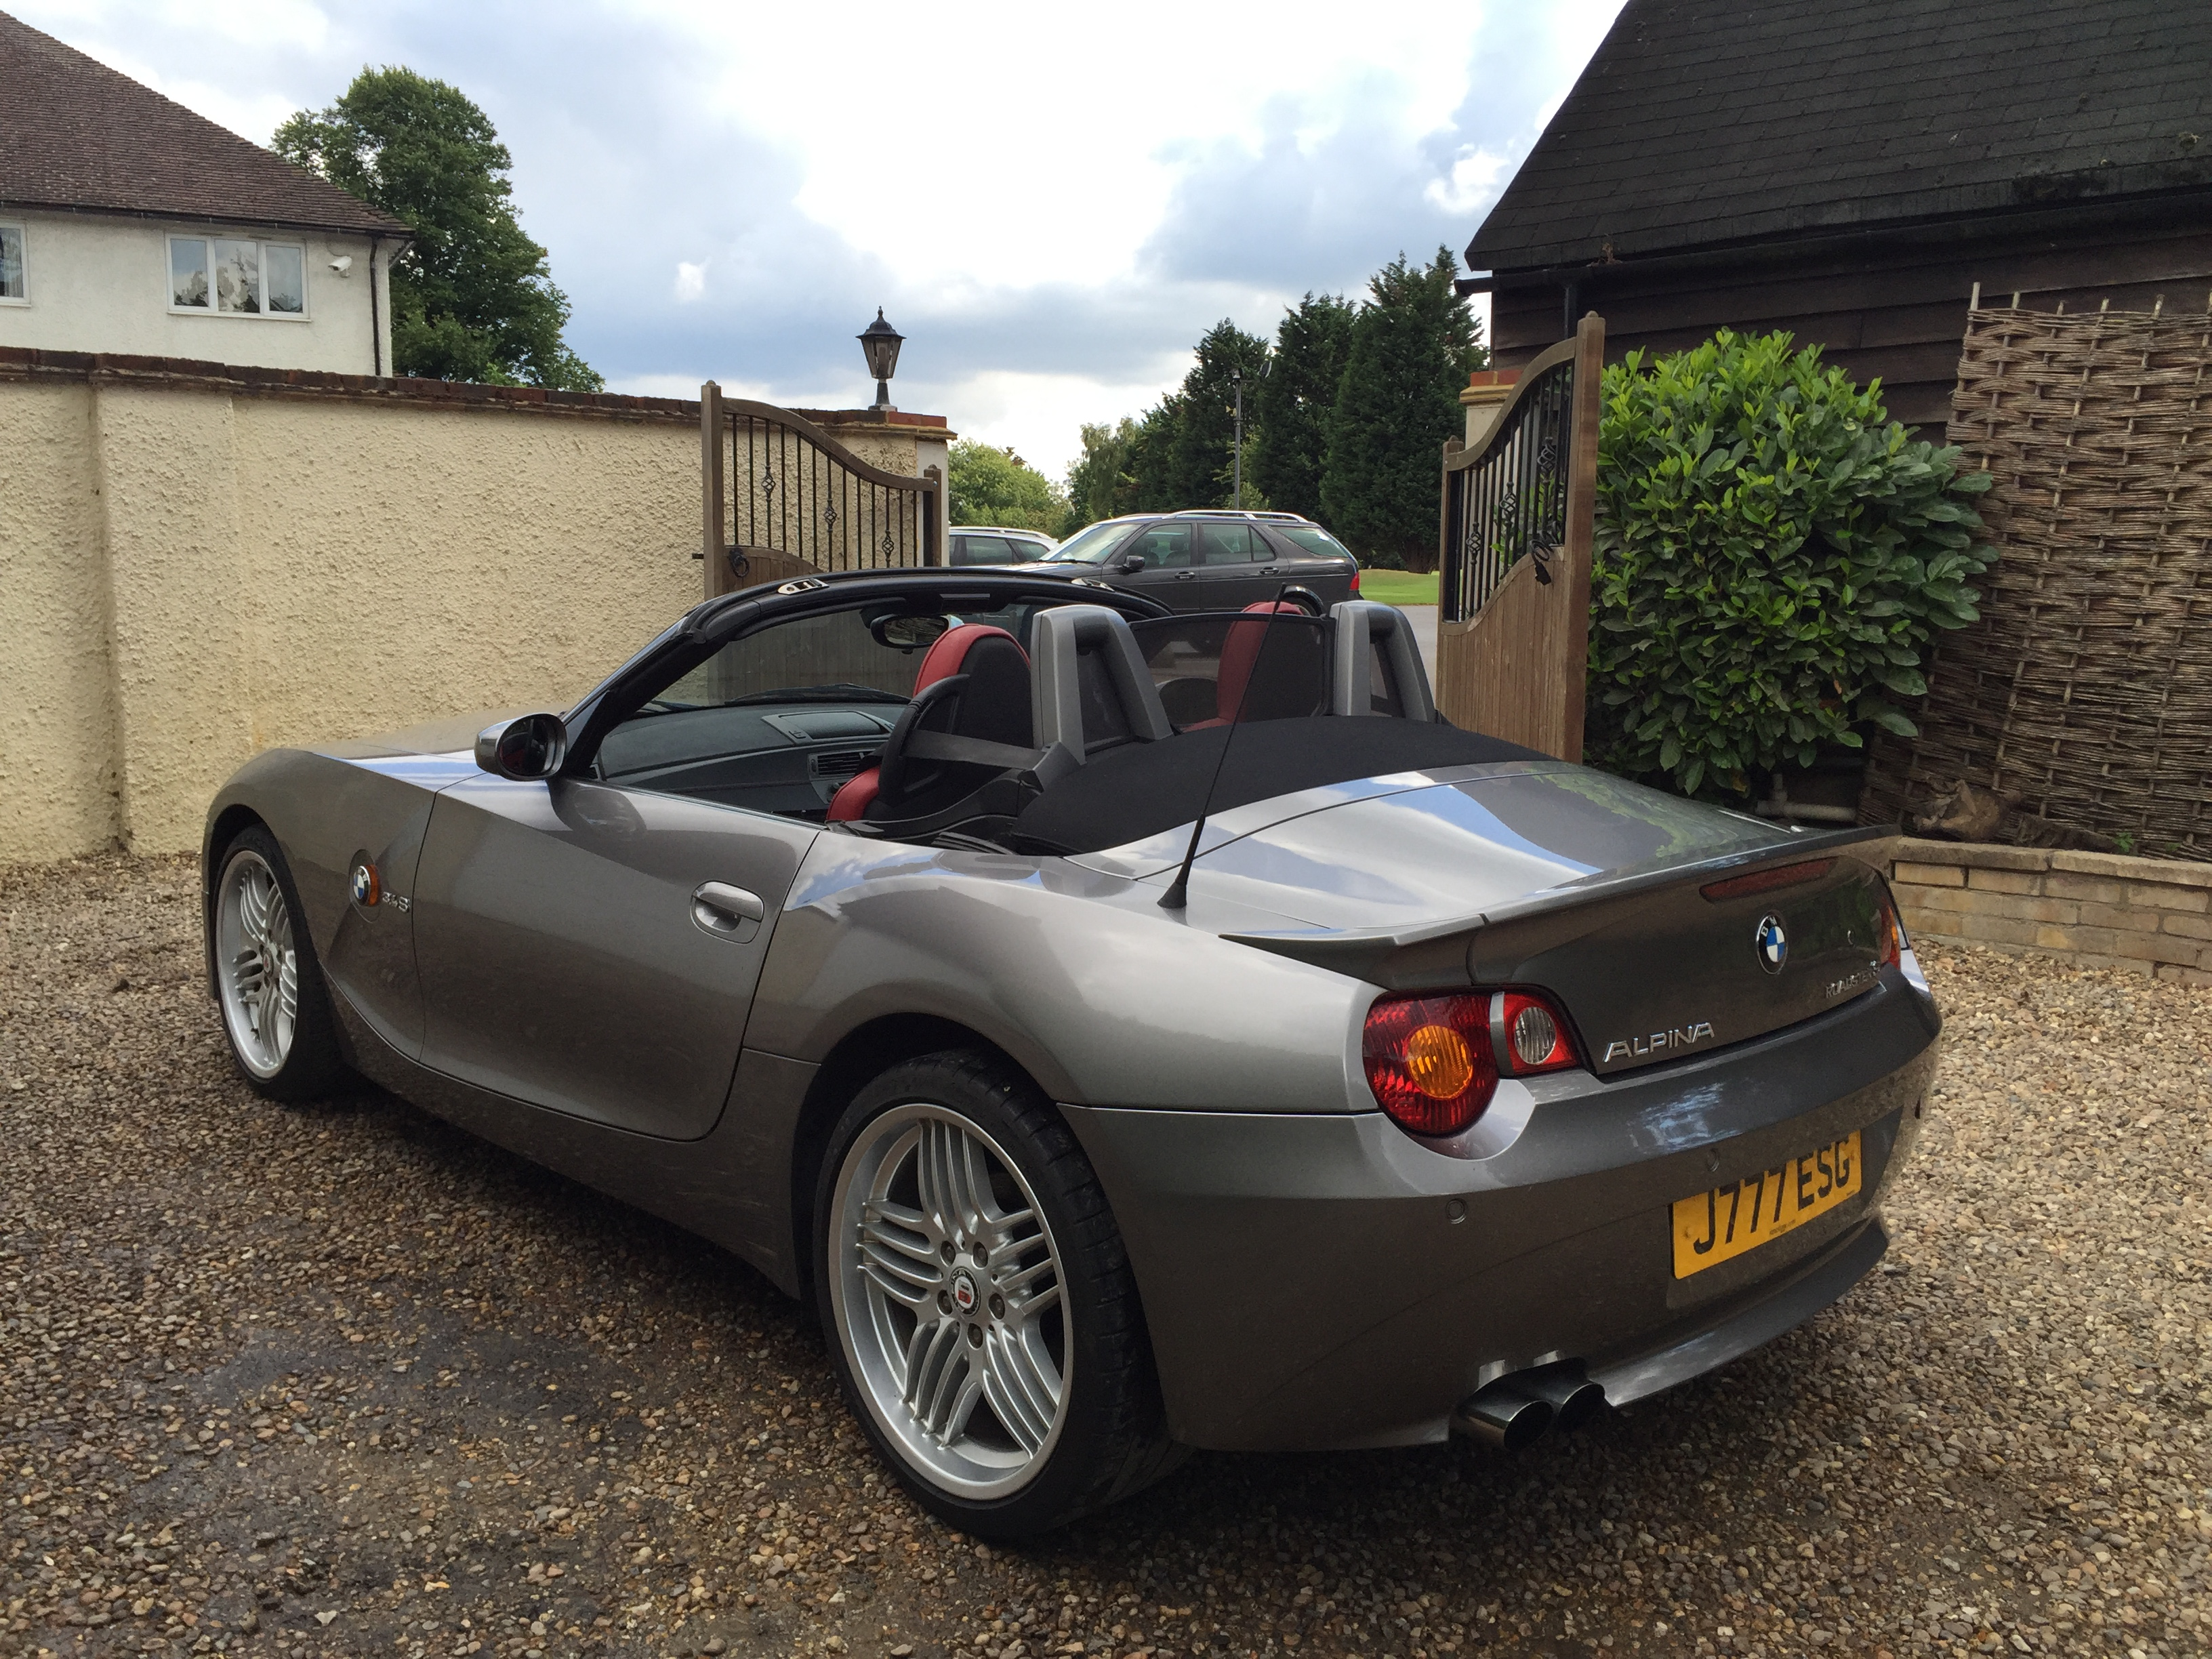 BMW Z4 3.4S ALPINA ROADSTER 6 SPEED MANUAL | GS Vehicle Servcies